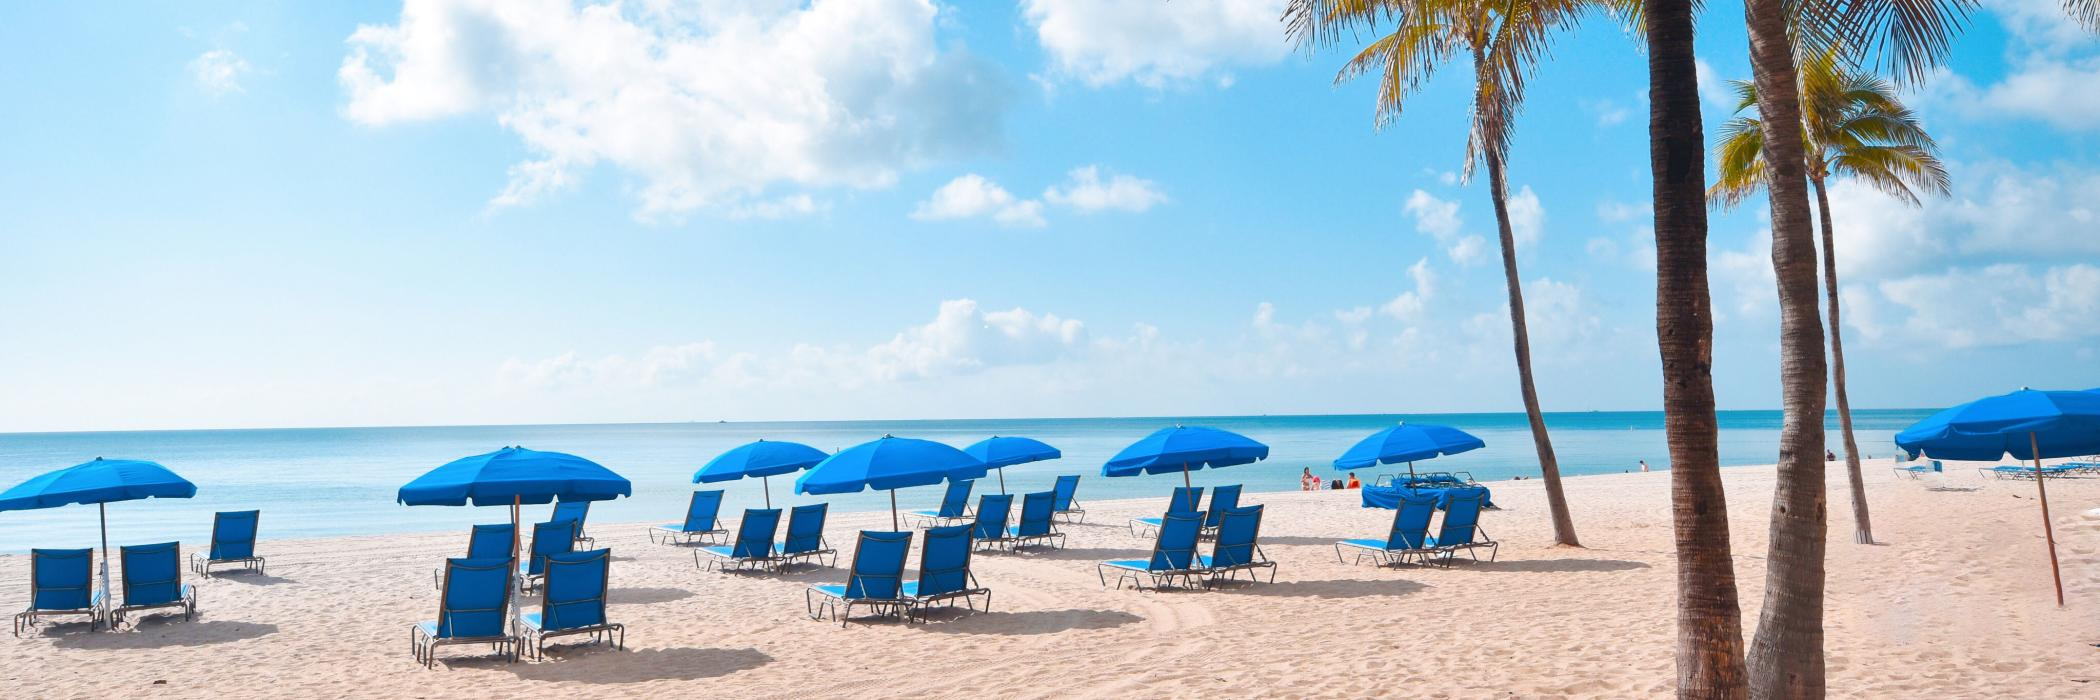 Blue chairs and umbrellas on the beach in Fort Lauderdale